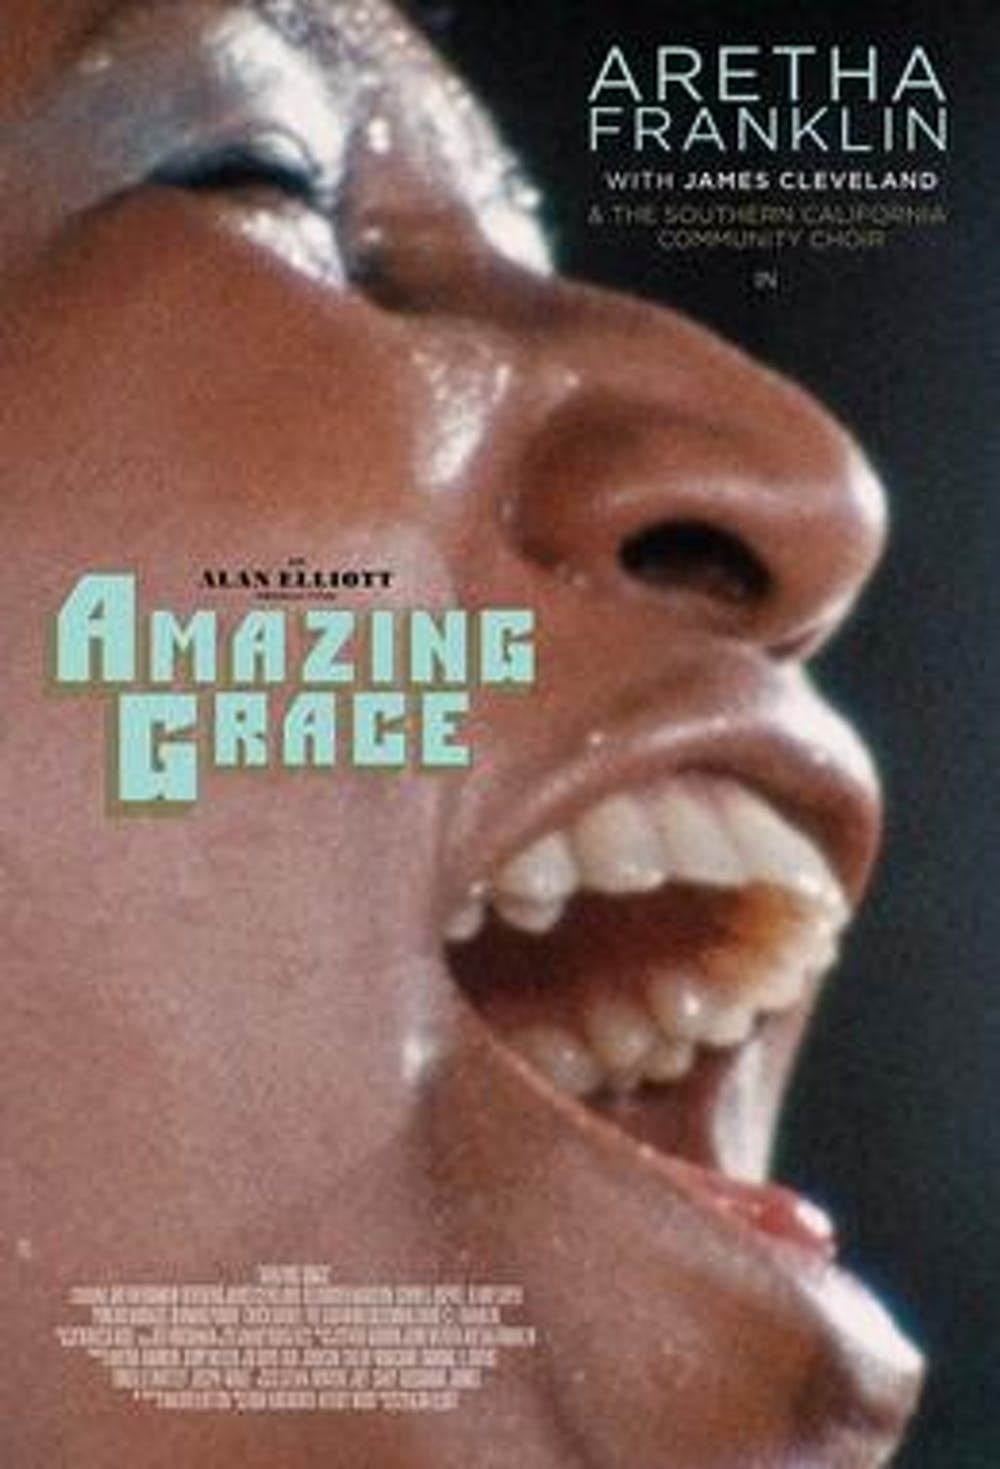 """<p>Before a commitment from the Franklin estate, """"Amazing Grace"""" endured technical and legal problems delaying release.&nbsp;</p>"""